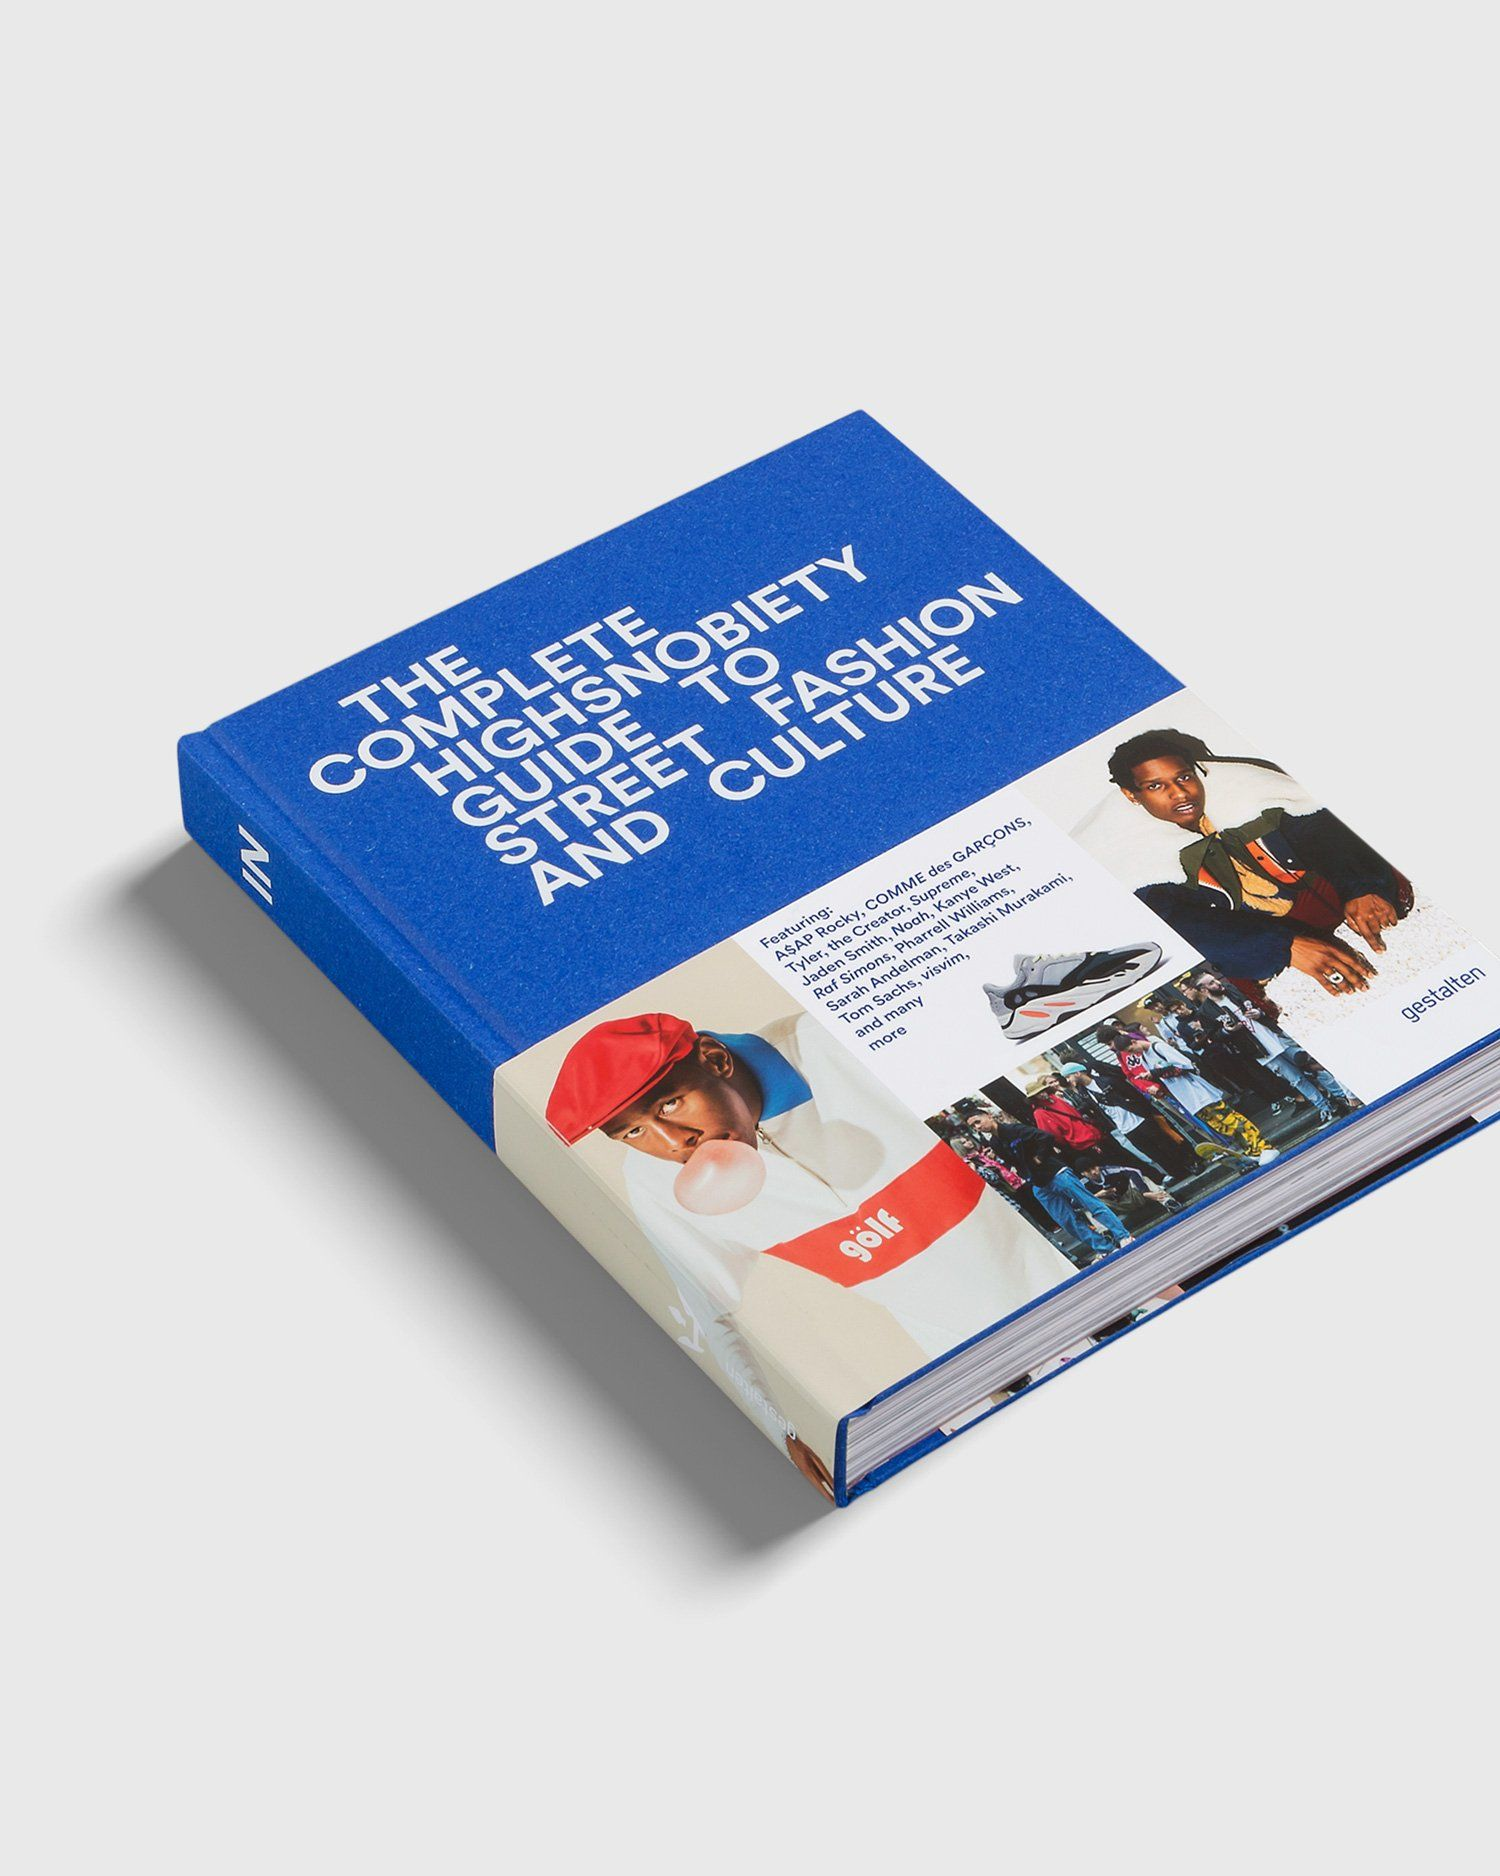 THE INCOMPLETE HIGHSNOBIETY GUIDE TO STREET FASHION AND CULTURE  - Image 1